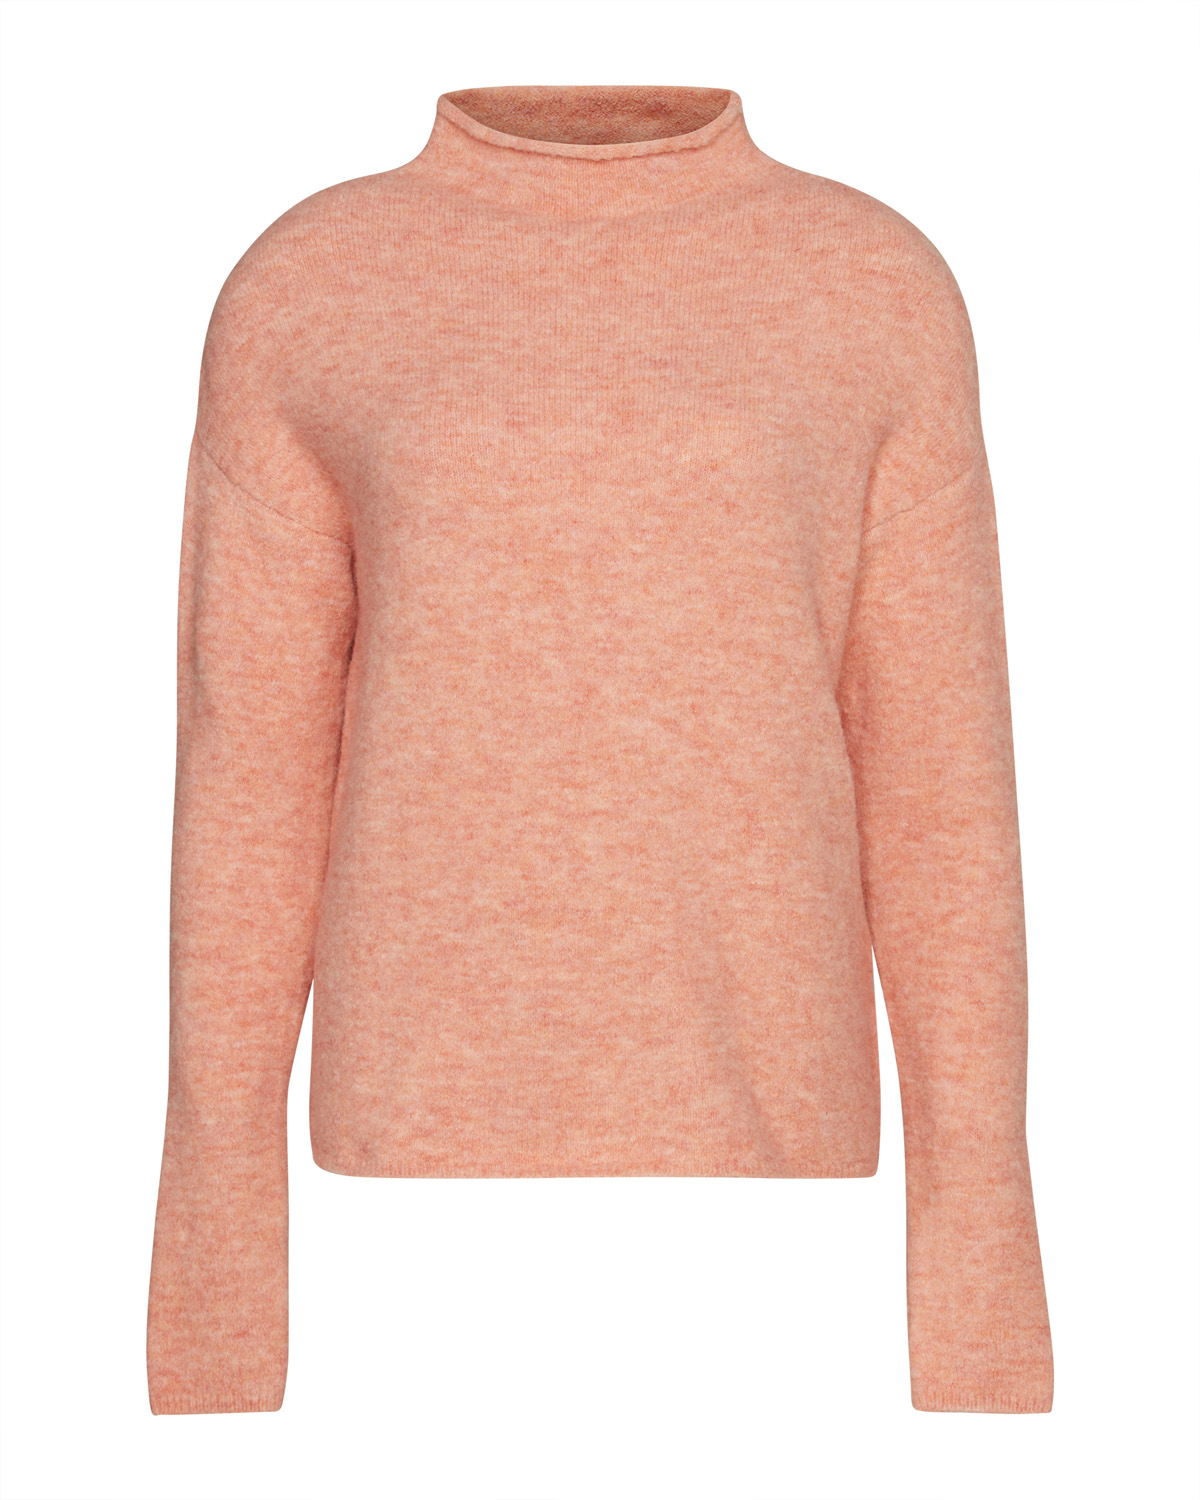 Truien Voor Dames.Dames High Neck Knit Trui 79508858 We Fashion